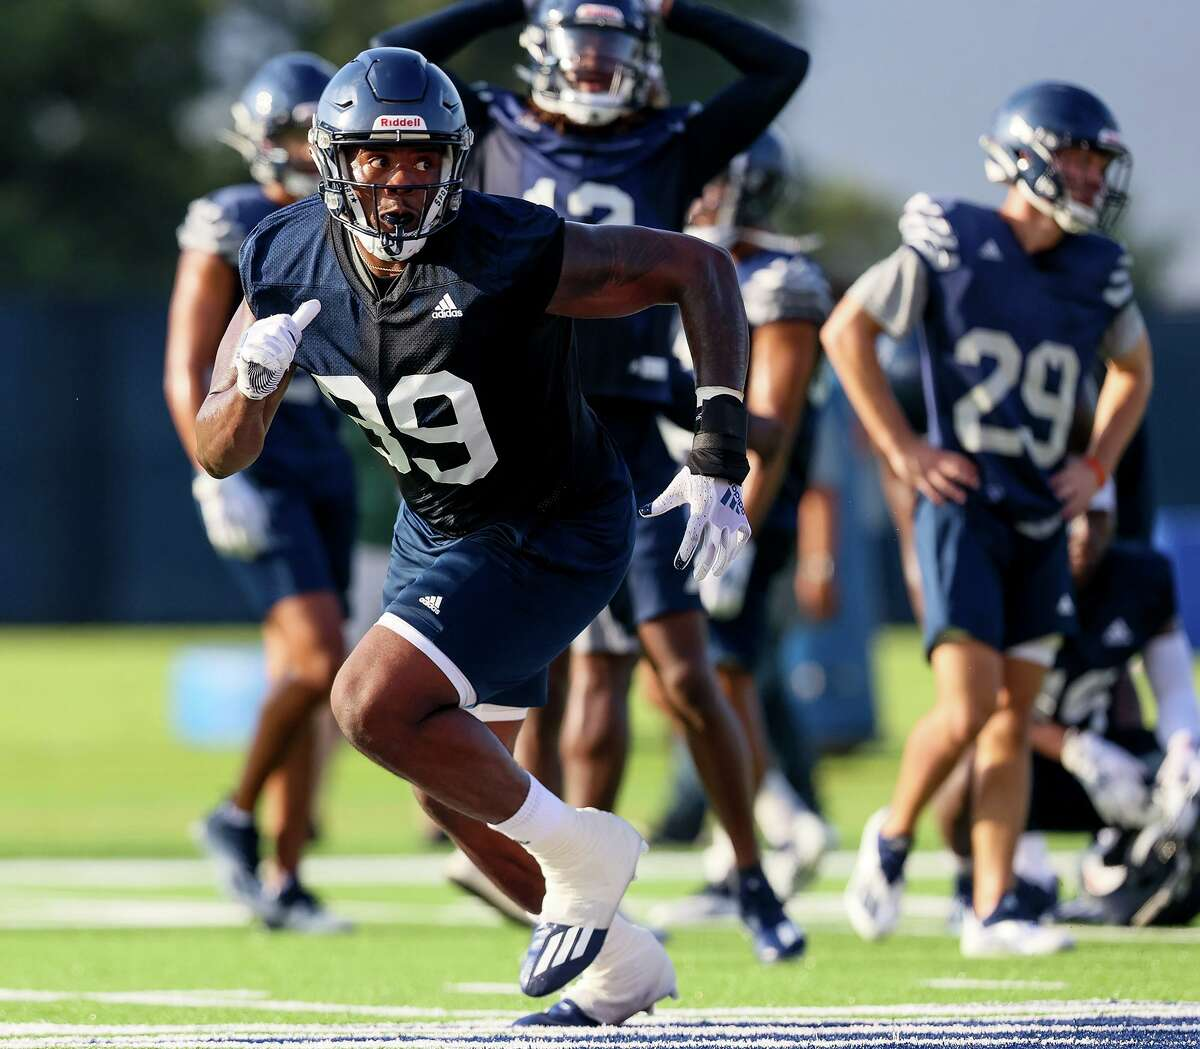 UTSA tight end Leroy Watson runs a route during passing drills in their first football practice of fall camp at the practice fields of the RACE facility on campus on Friday, Aug. 6, 2021.